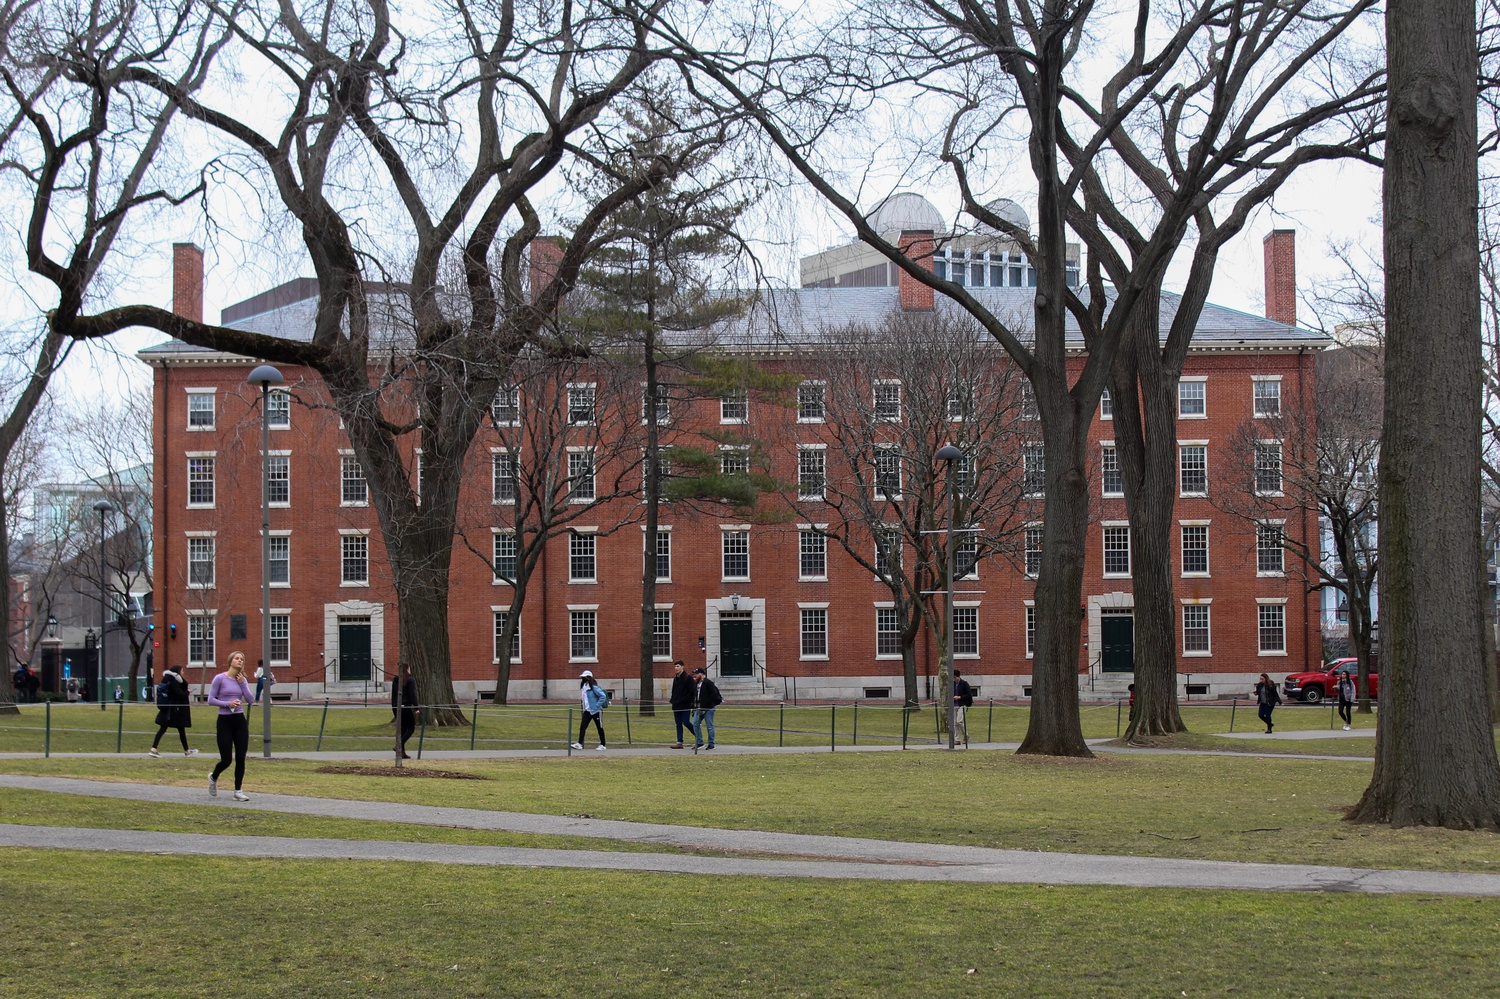 harvard university mit sue donald trump over student visa issue